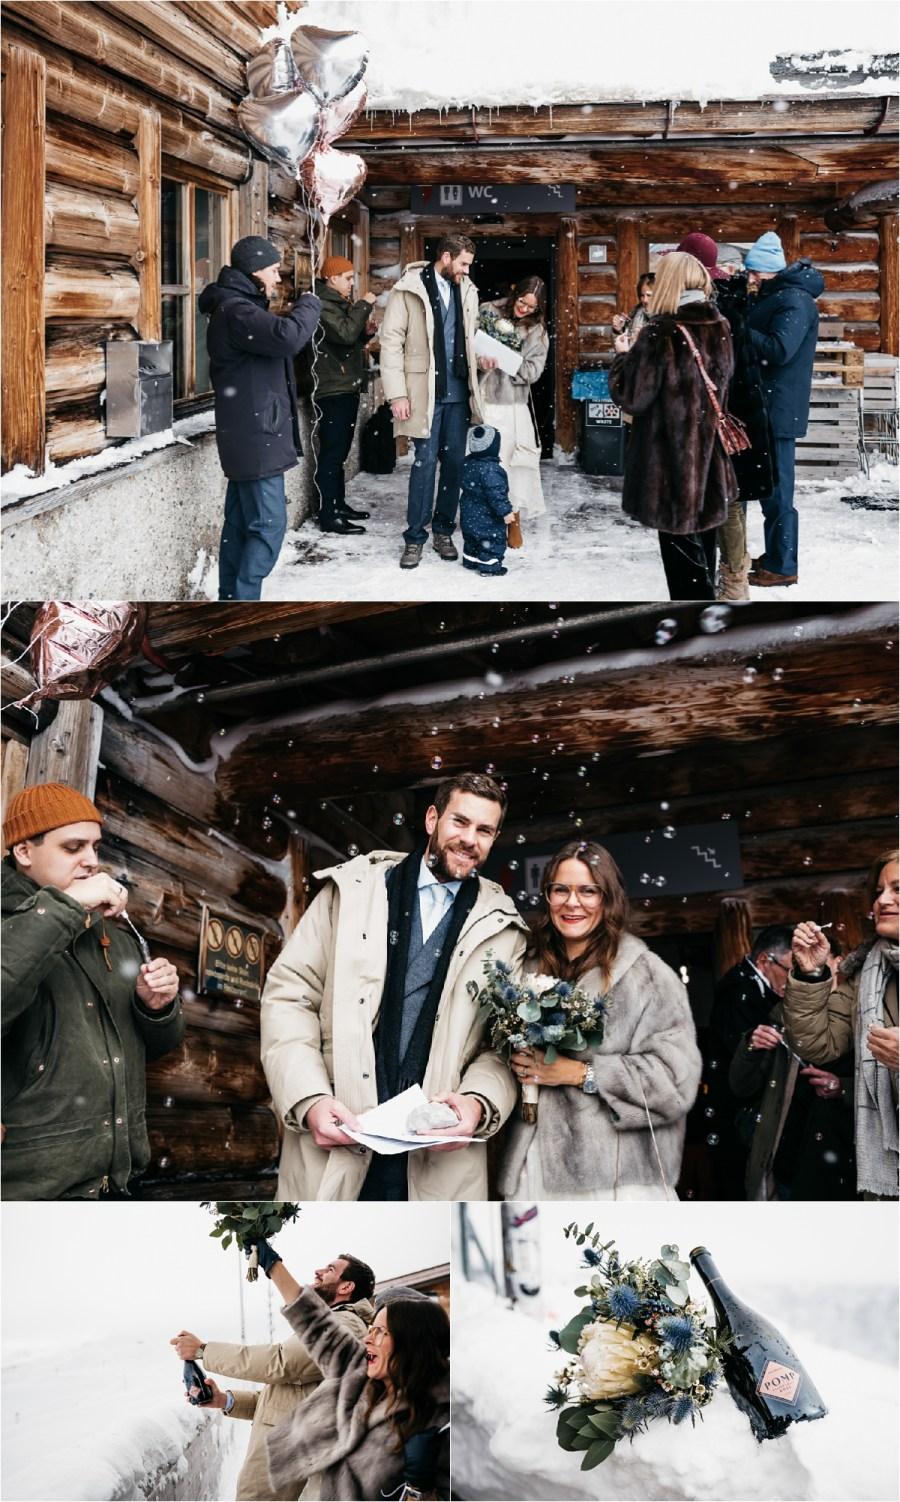 The guests congratulate the bride and groom after their civil ceremony on the Zugspitze by Aneta Lehotska